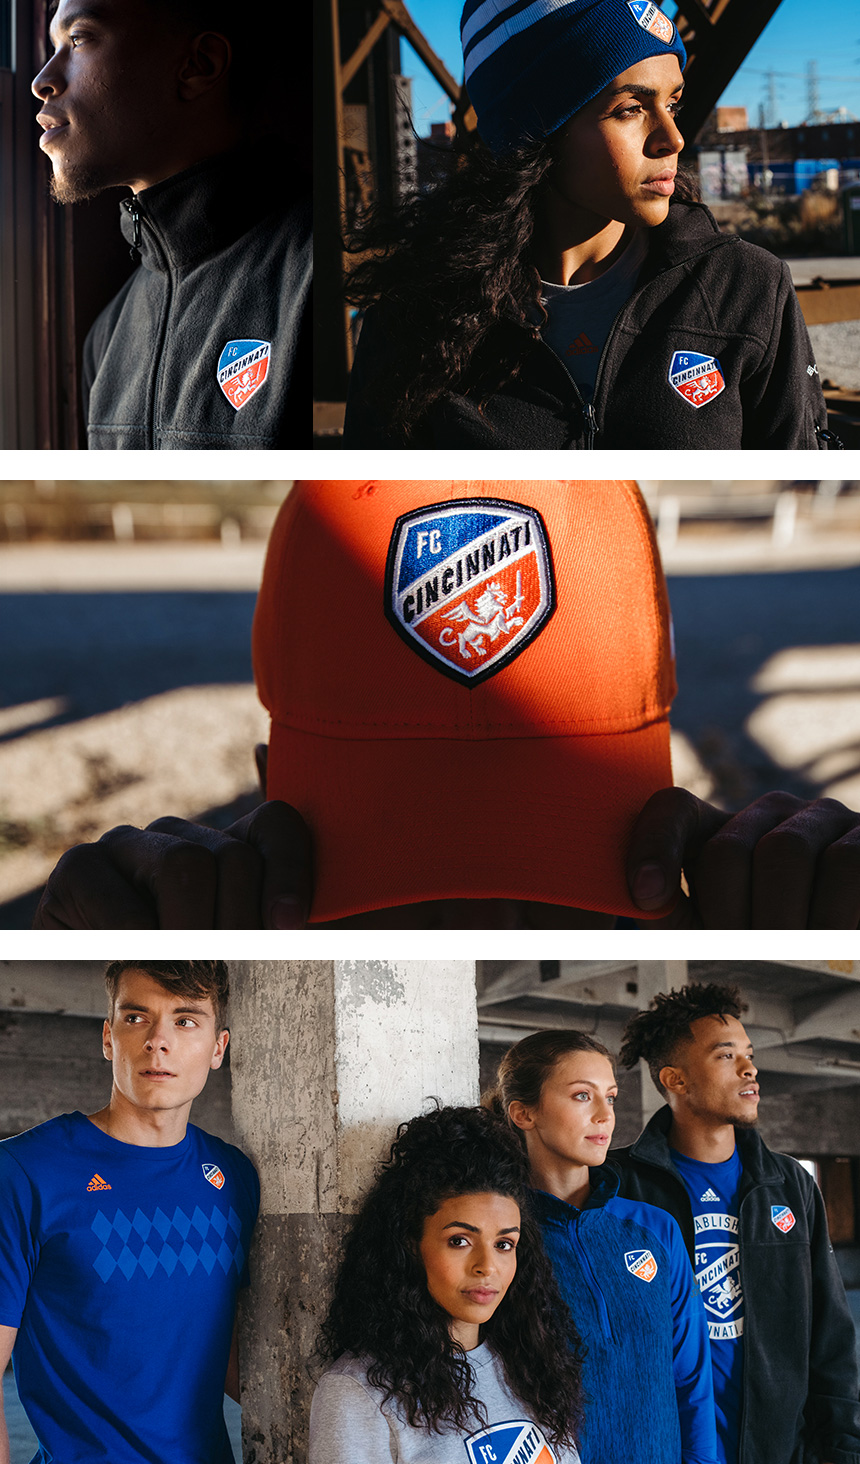 New Crest for FC Cincinnati by Interbrand